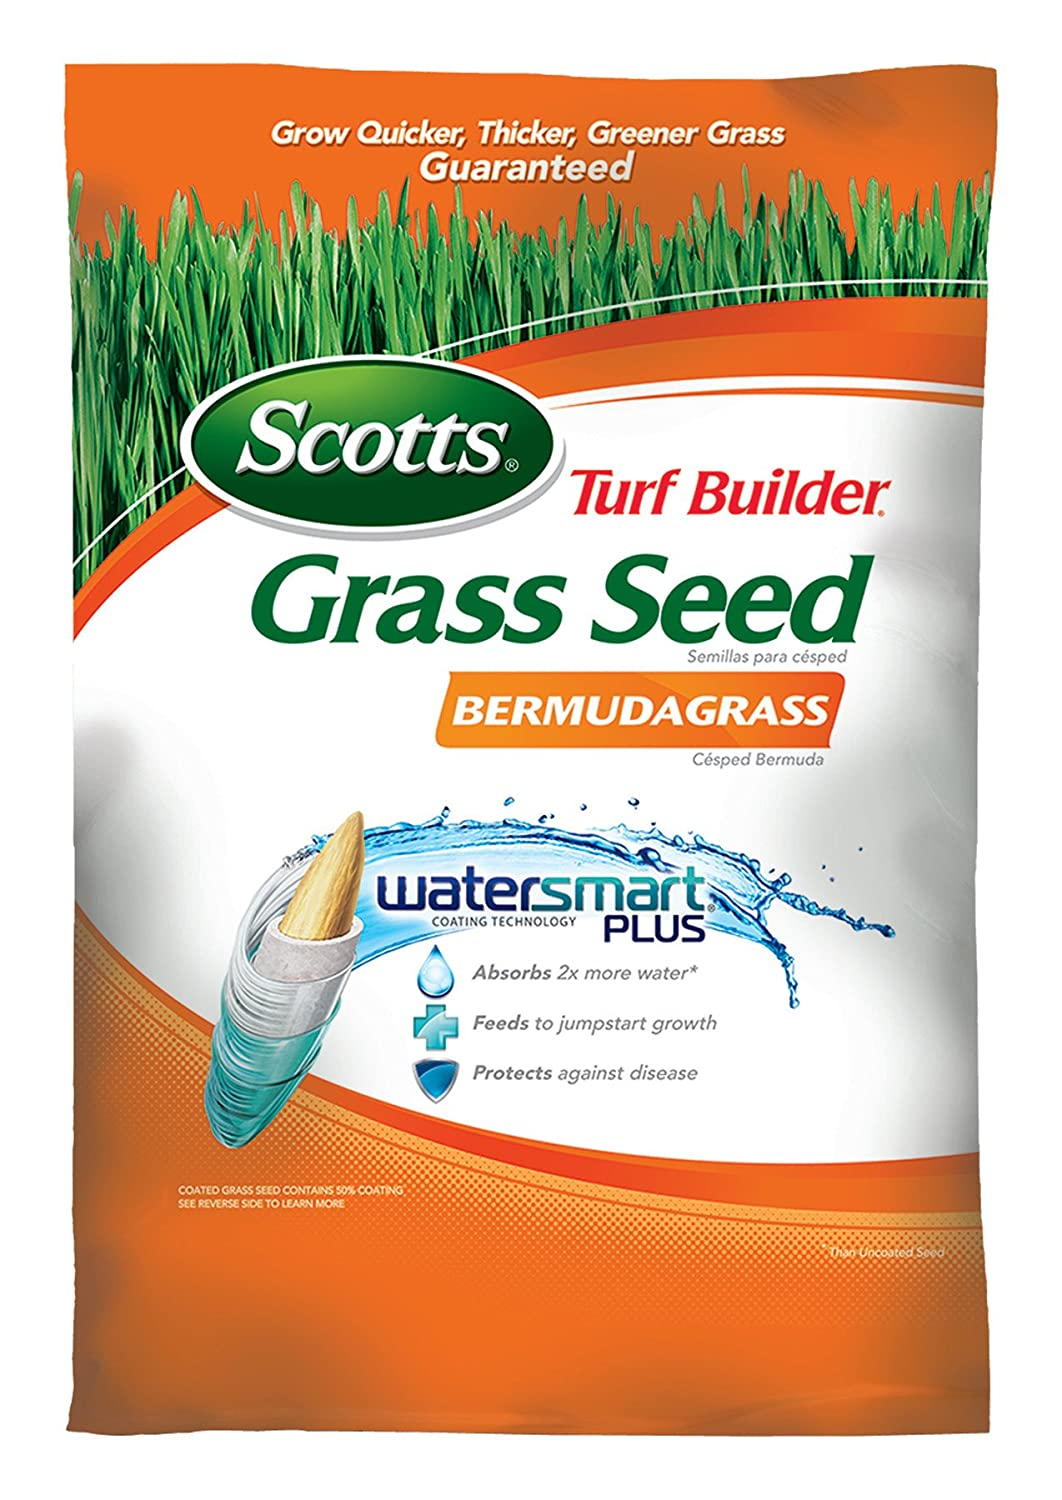 Best way to plant grass seed - Amazon Com Scotts Turf Builder Grass Seed Bermudagrass 15 Pound Sold In Select Southern States Patio Lawn Garden